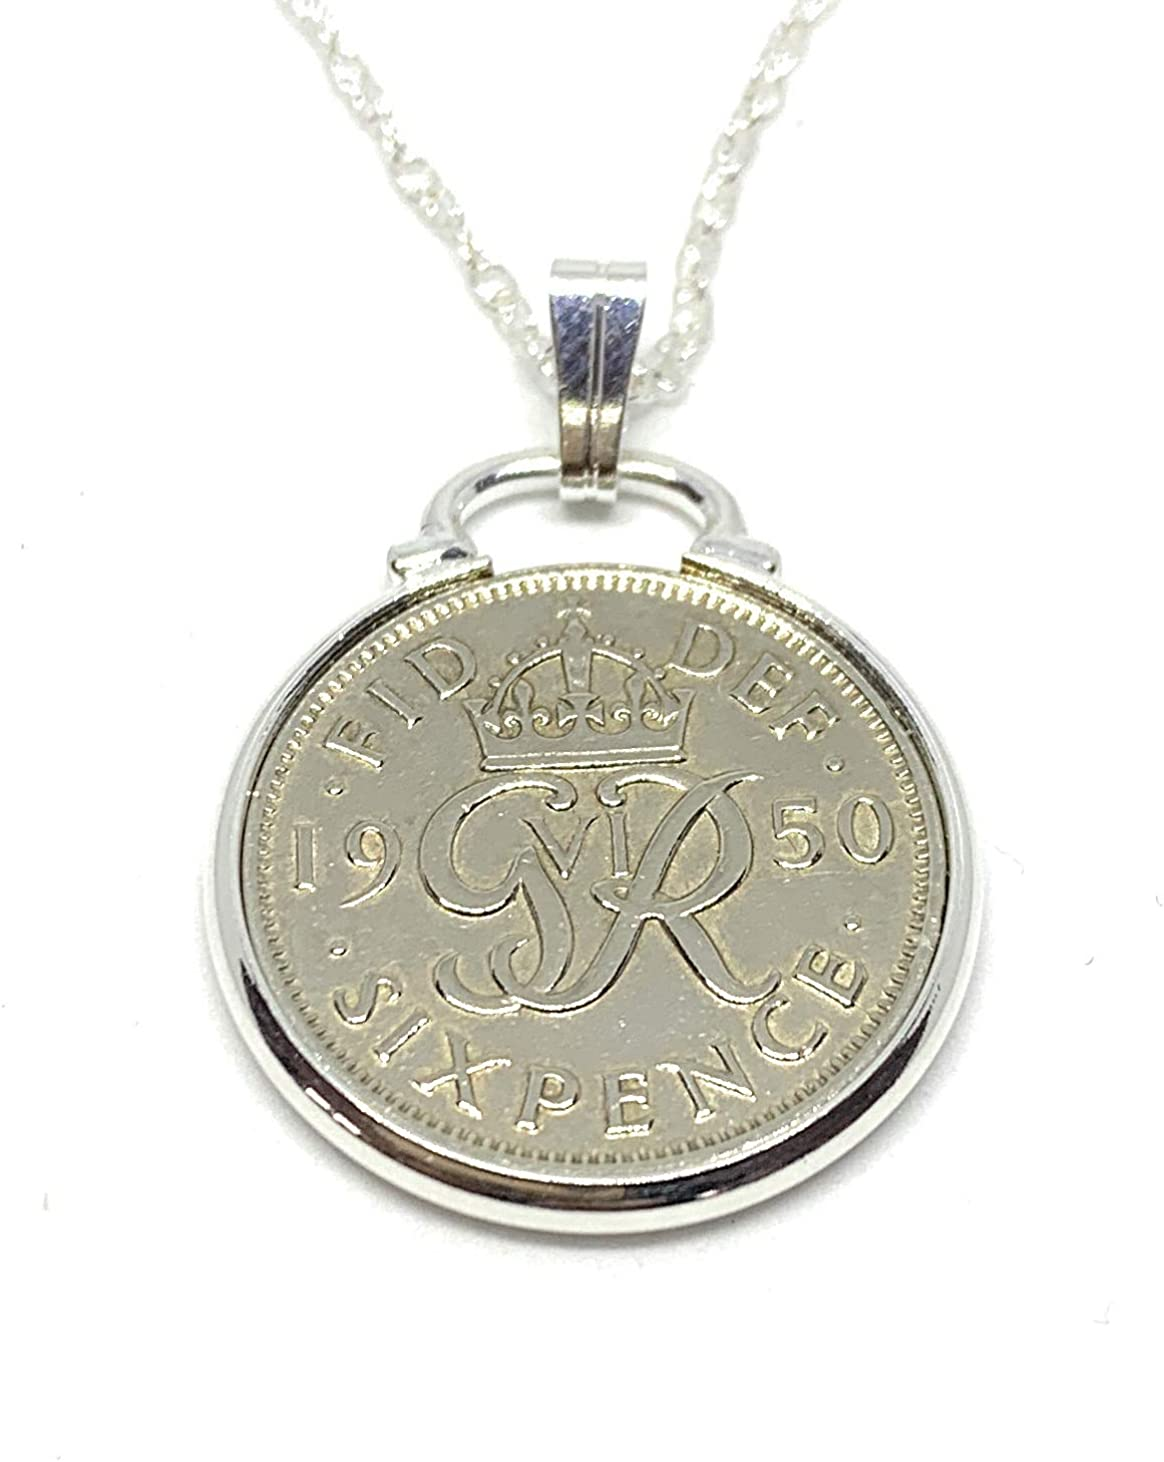 Cinch Pendant 1950 Lucky sixpence Sterling Challenge the lowest price of Japan ☆ Online limited product plus Birthday 71st a